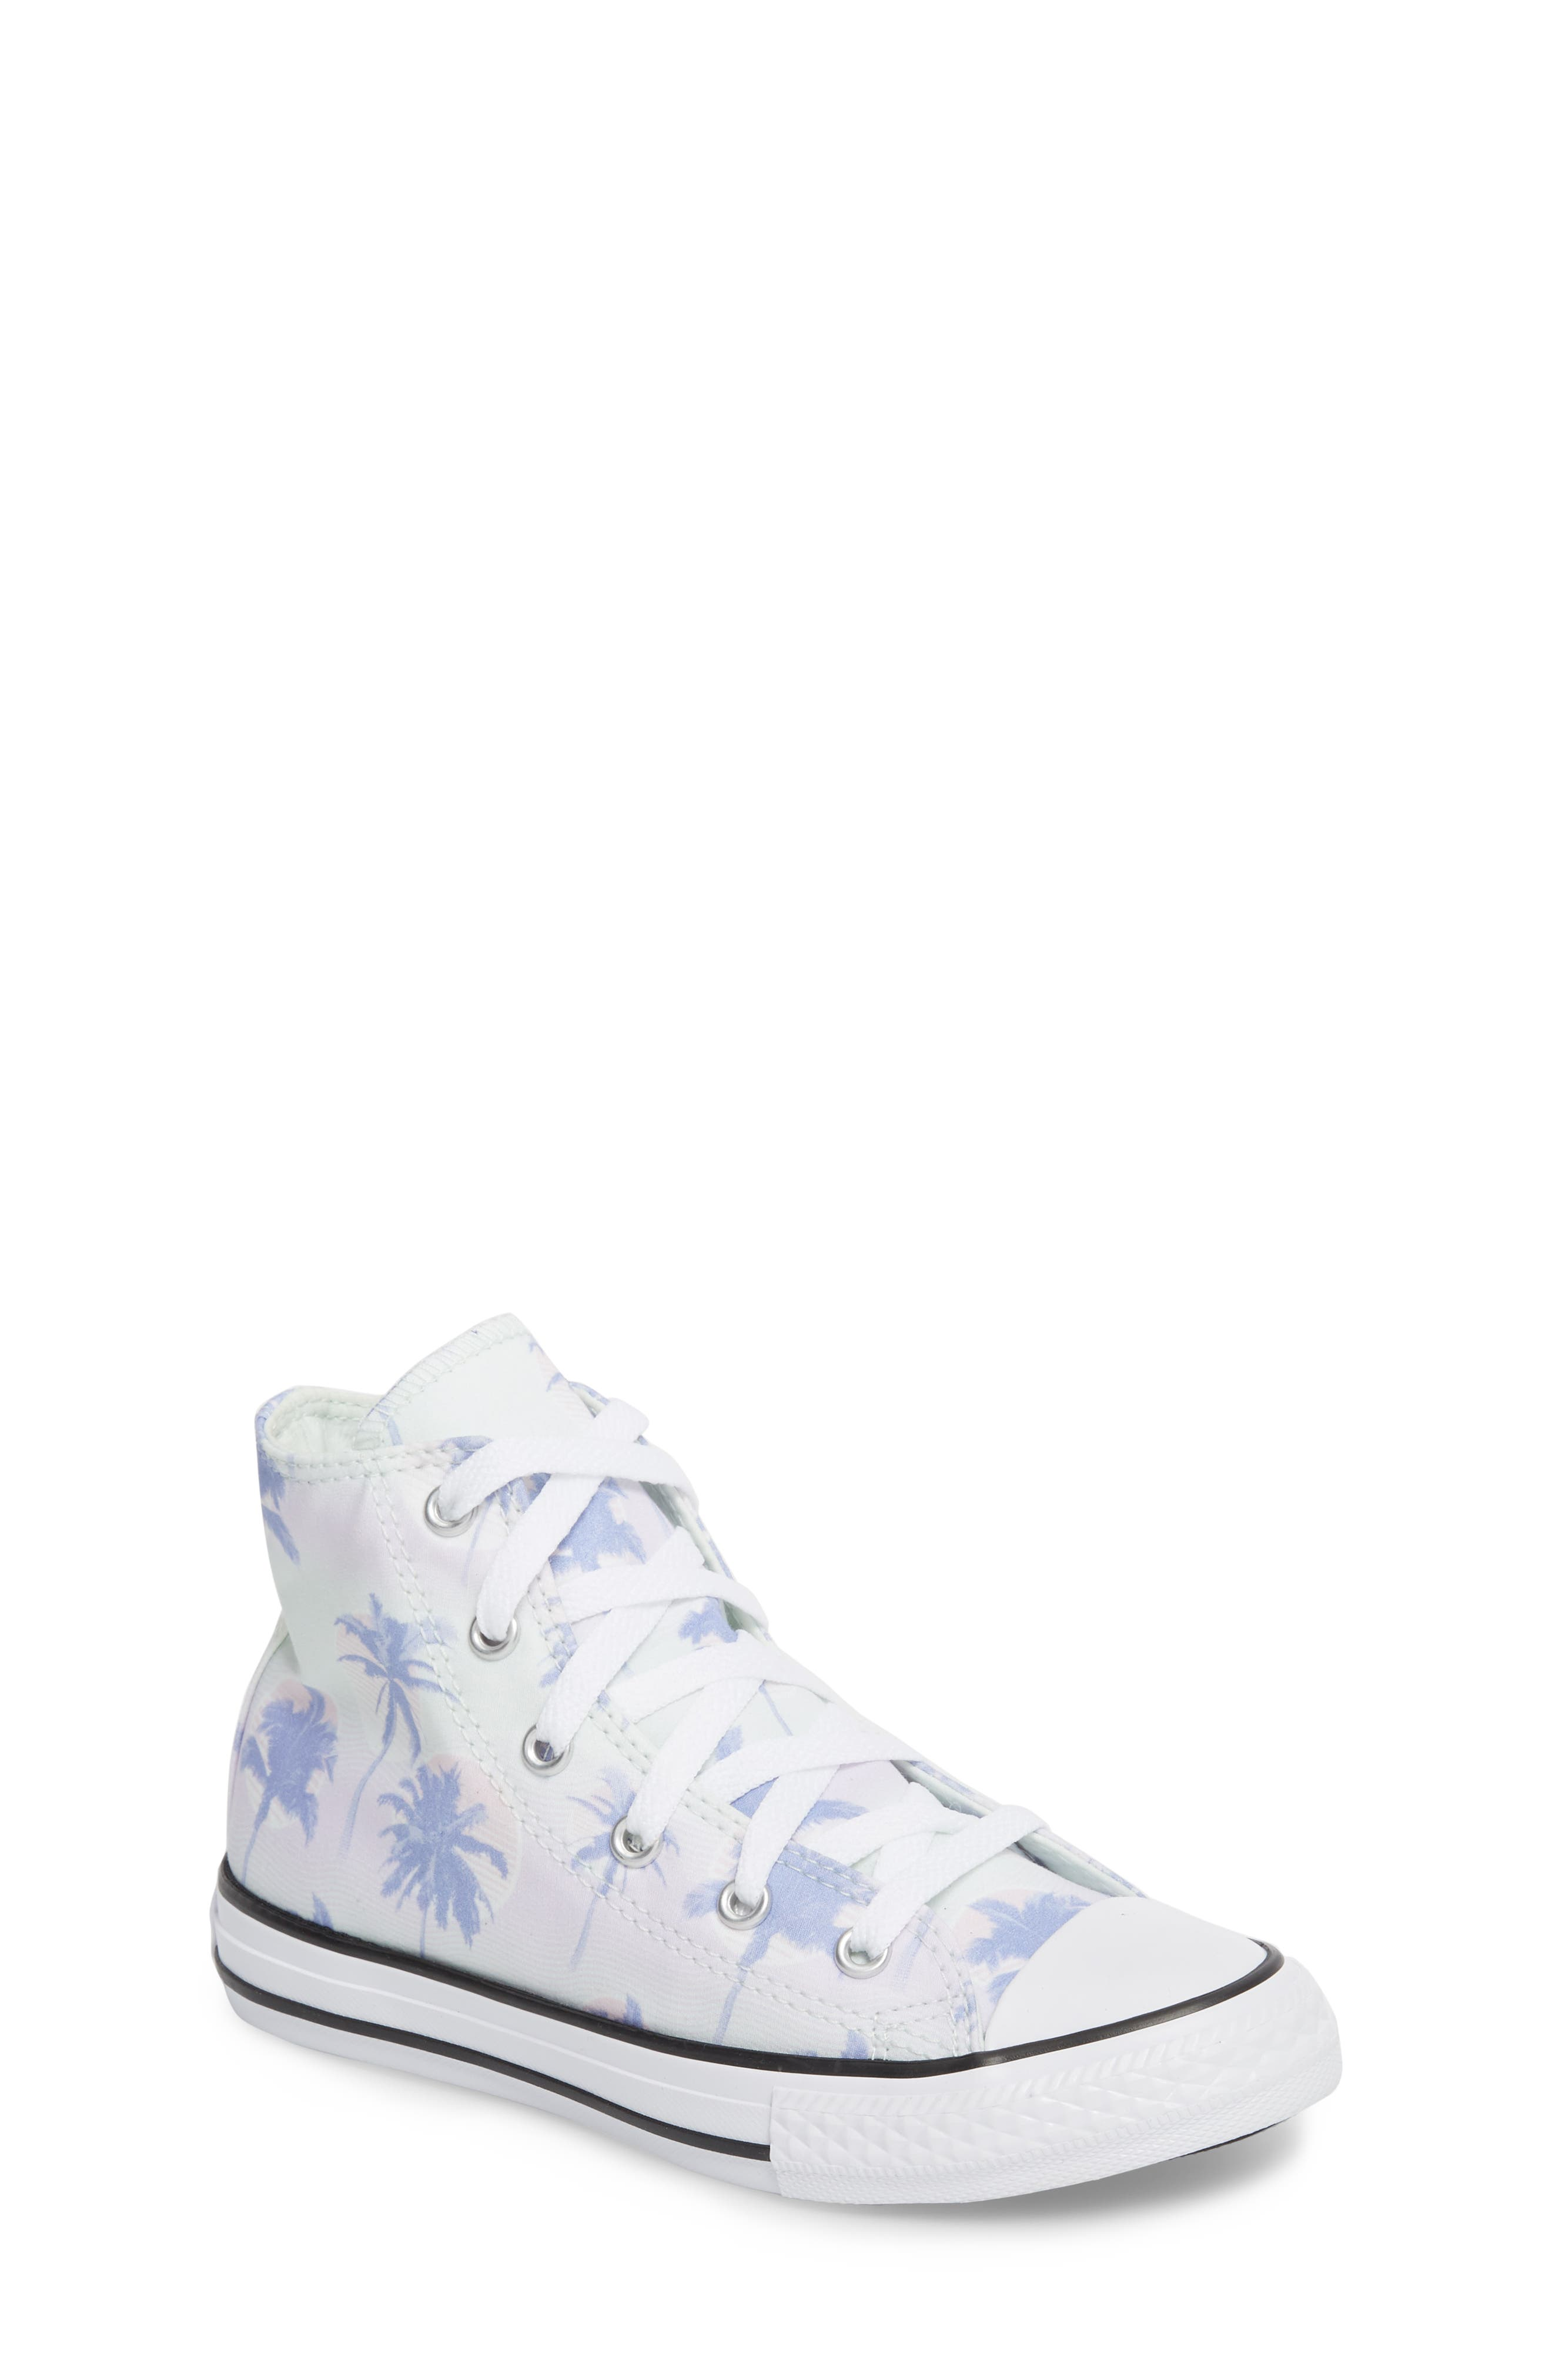 Chuck Taylor<sup>®</sup> All Star<sup>®</sup> Palm Tree High Top Sneaker,                             Main thumbnail 1, color,                             Purple